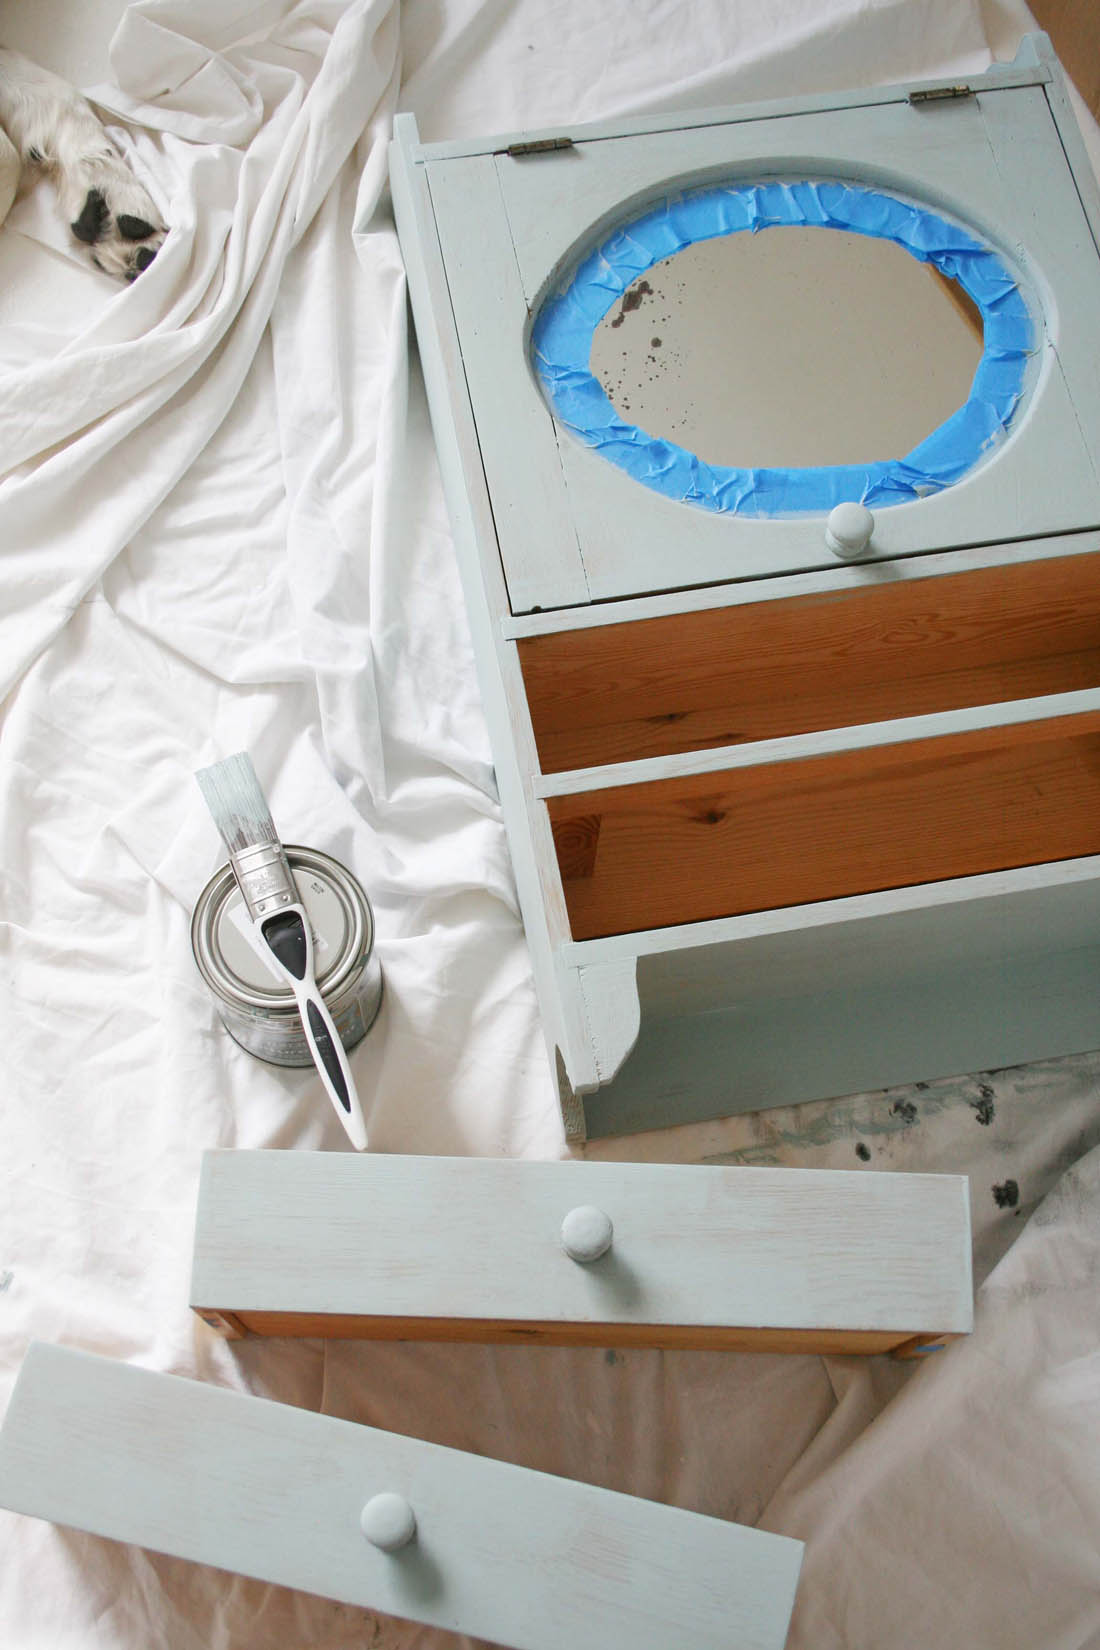 Tips for painting wooden furniture | Apartment Apothecary